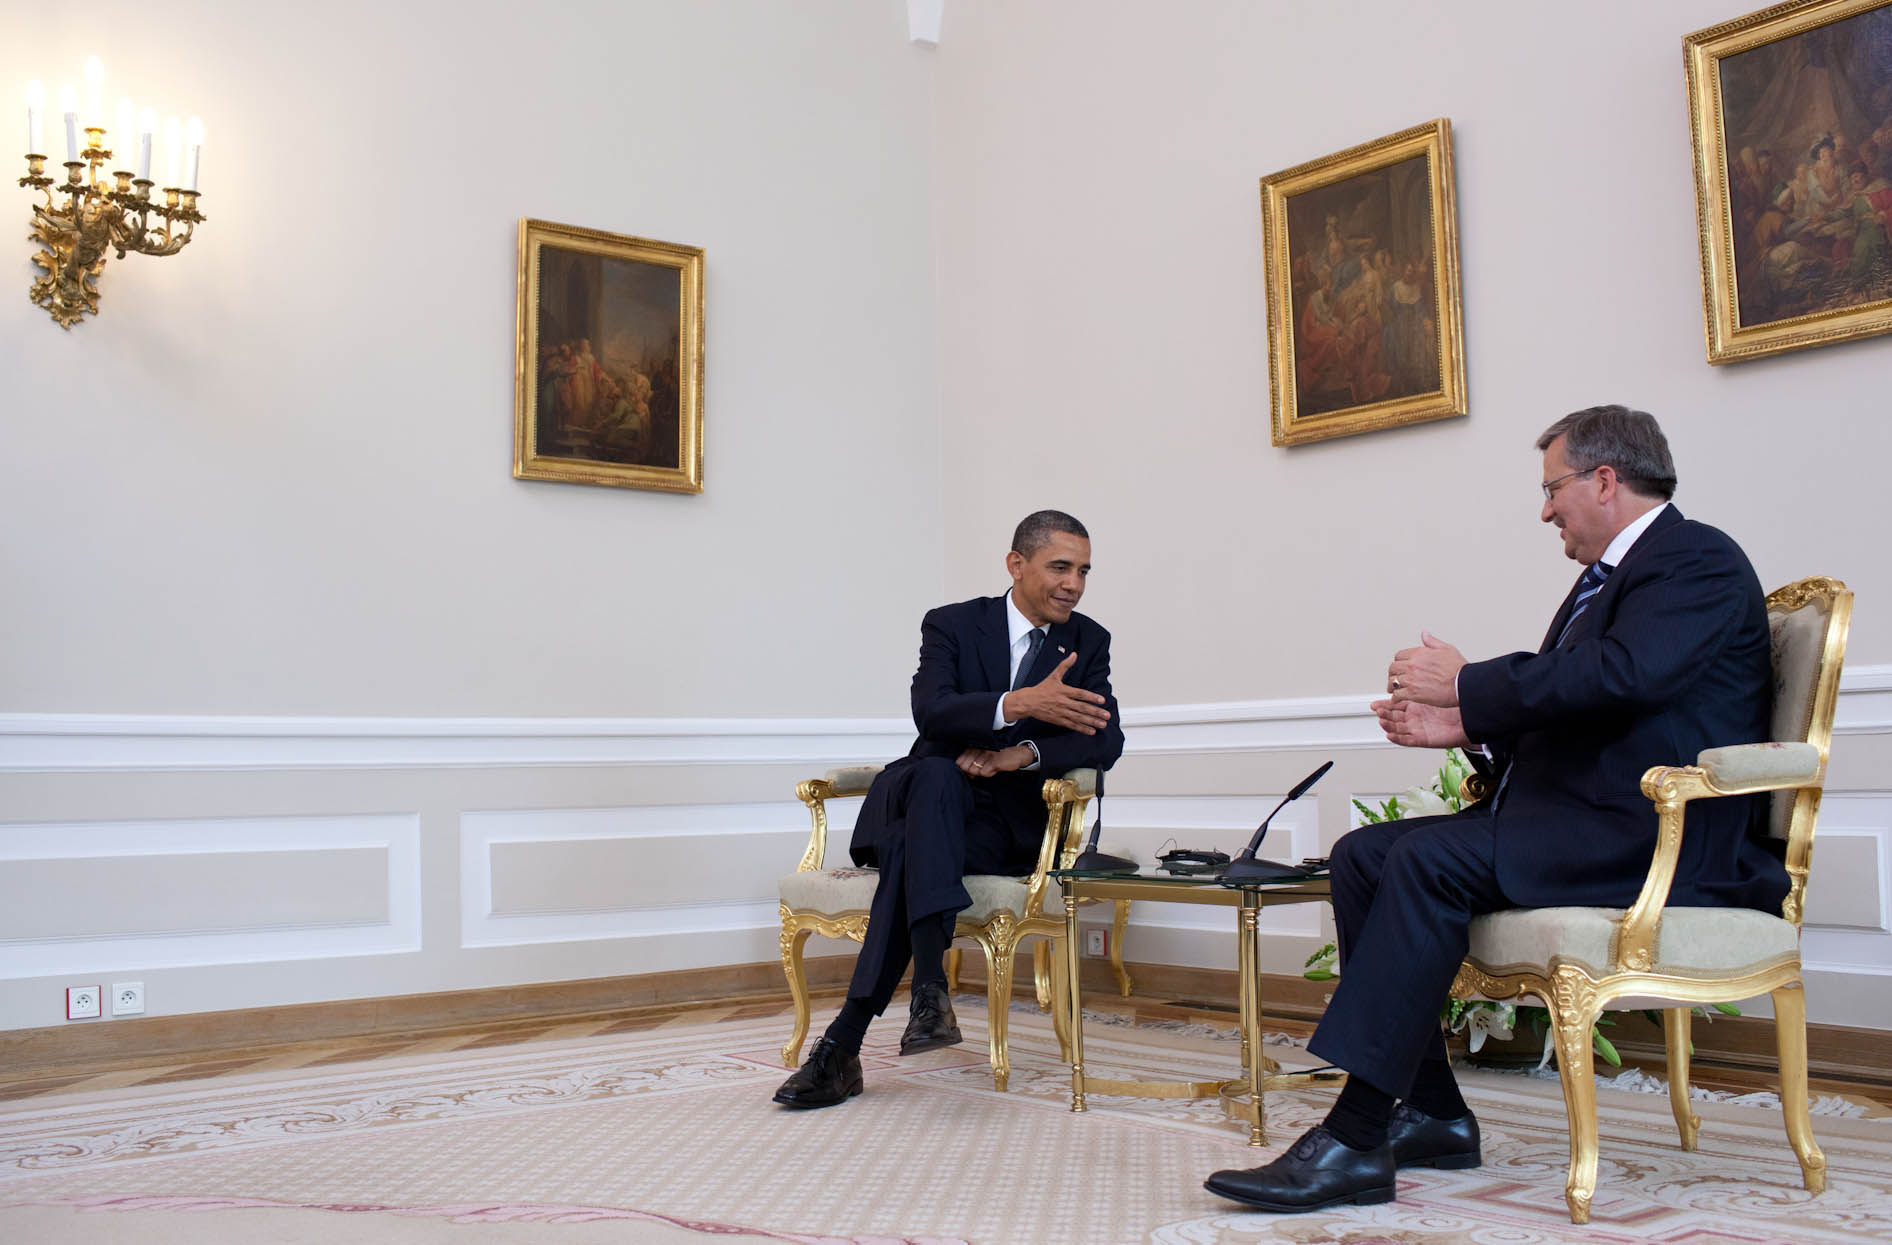 President Barack Obama reaches to shake hands with President Bonislaw Komorowski